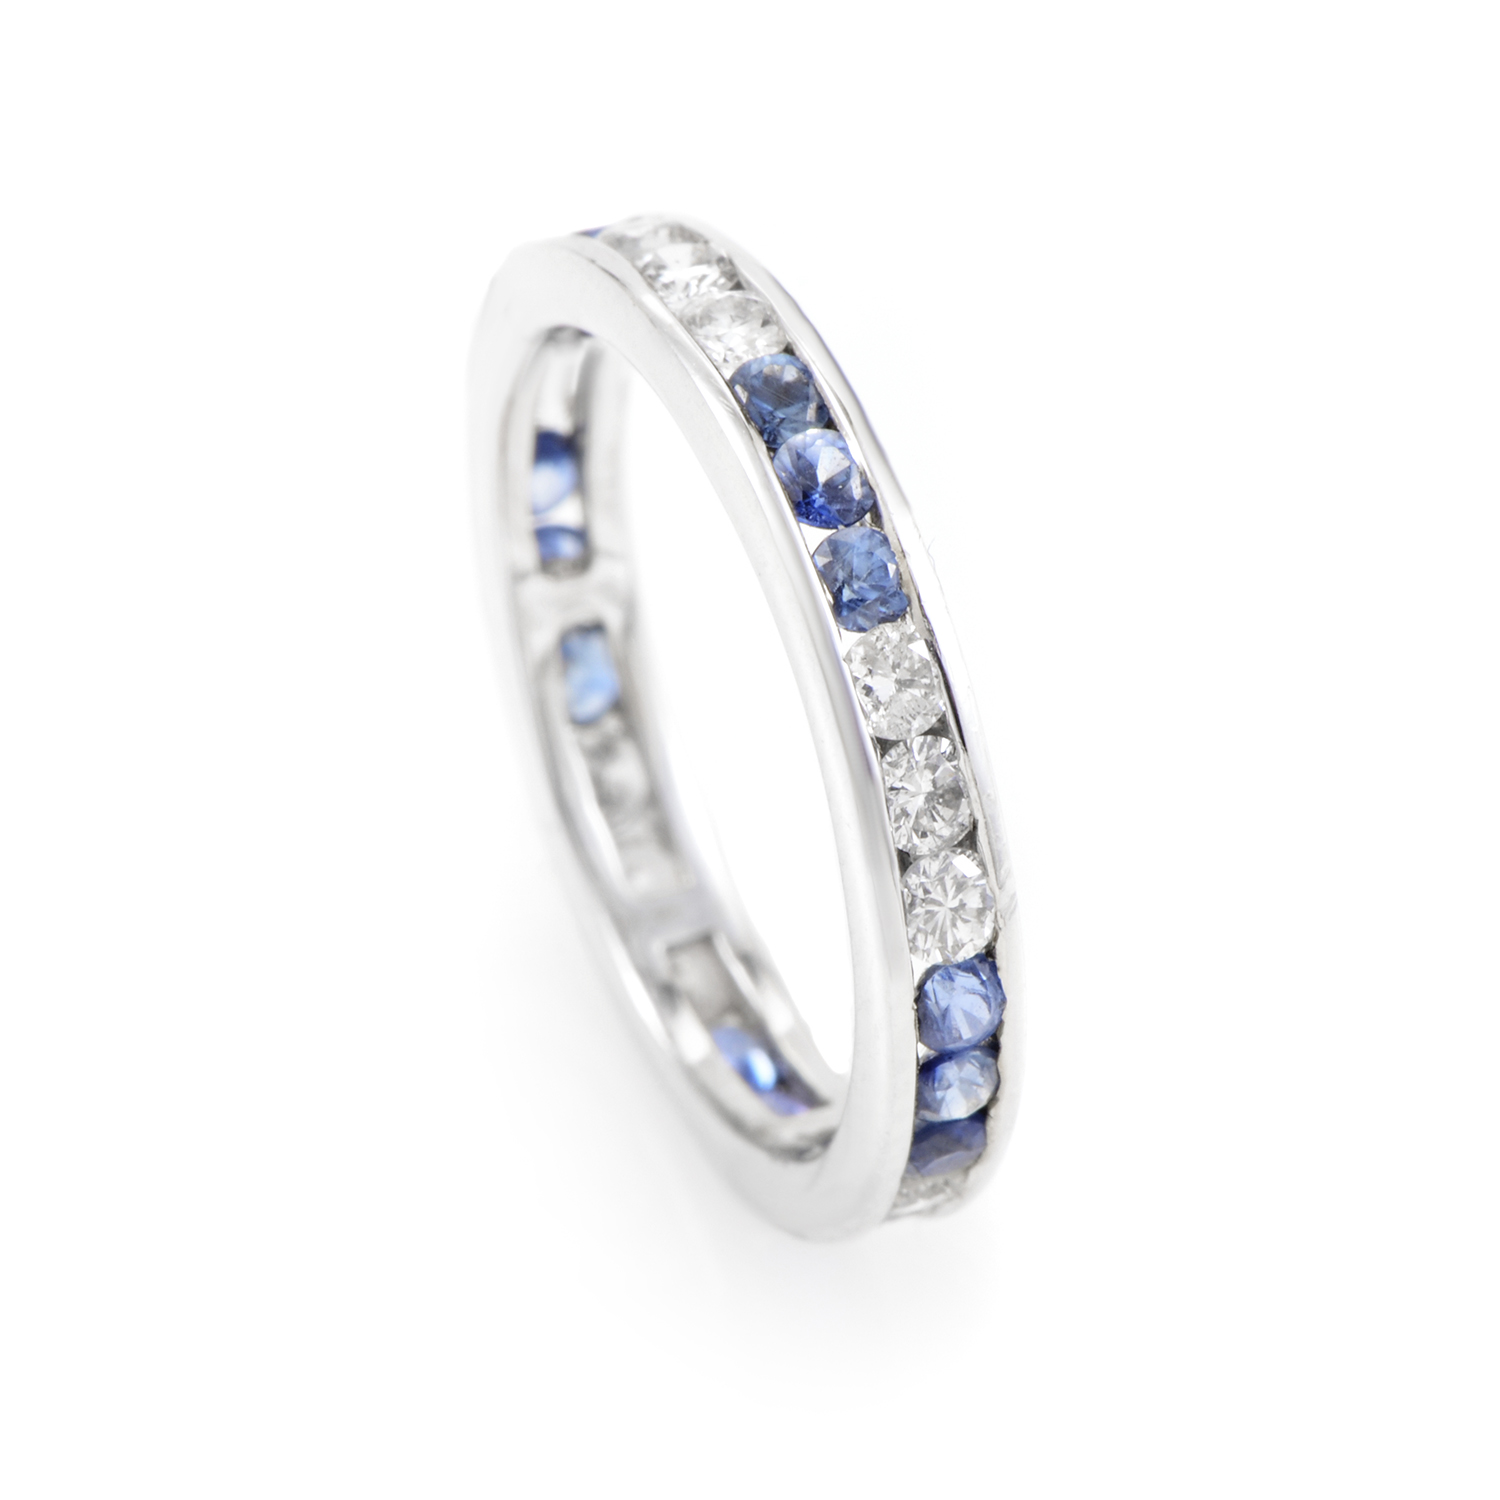 18K White Gold Diamond & Sapphire Eternity Band KO7705RBZ